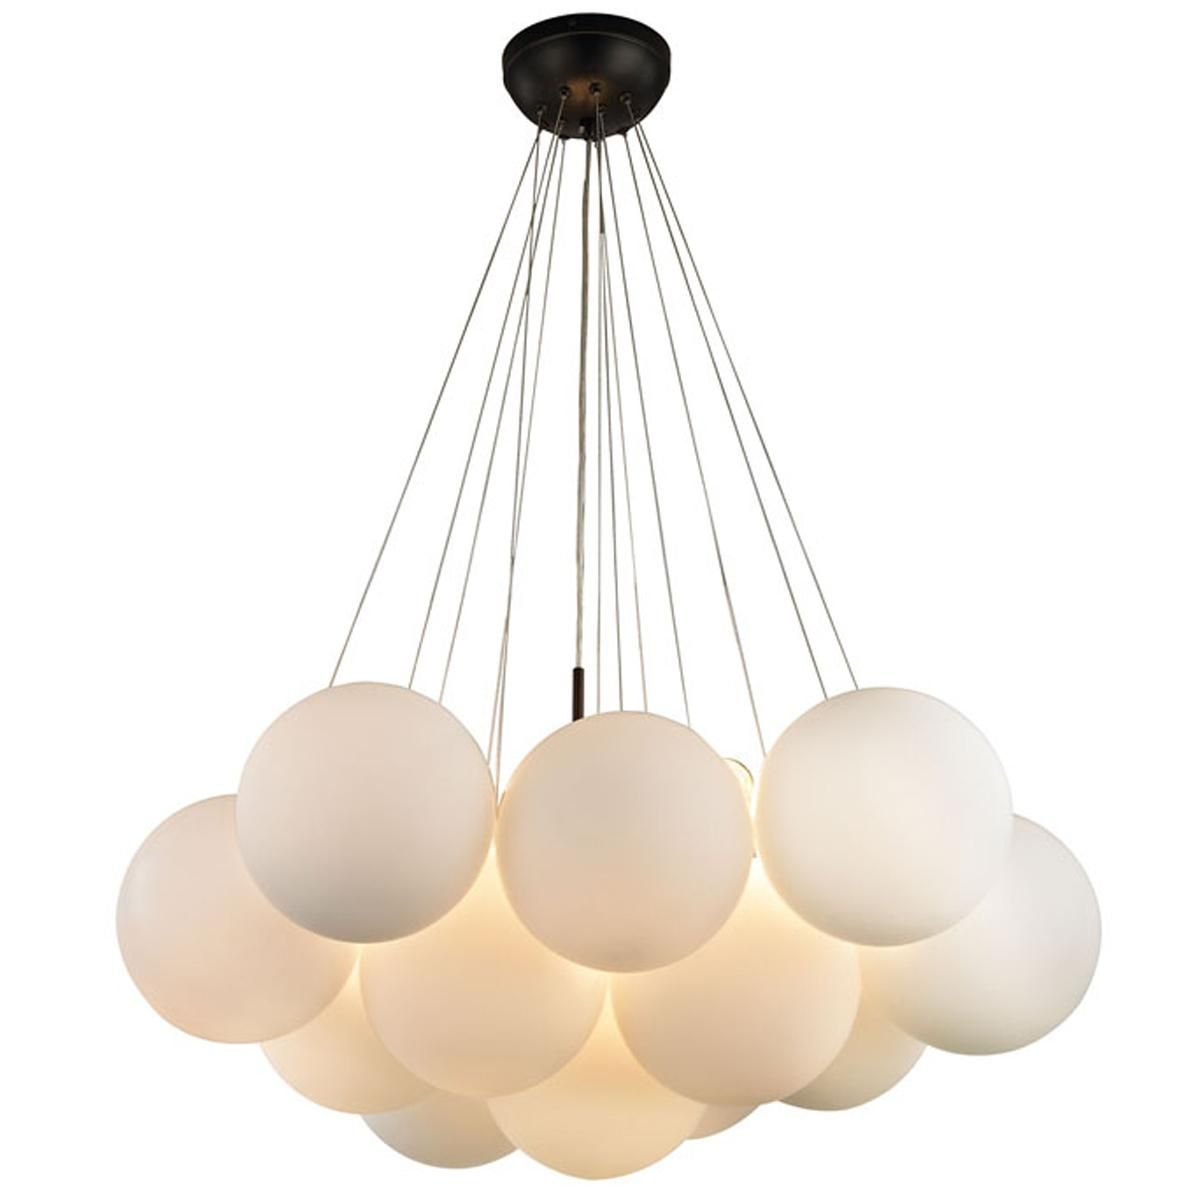 Gathered Globe Chandelier - Small